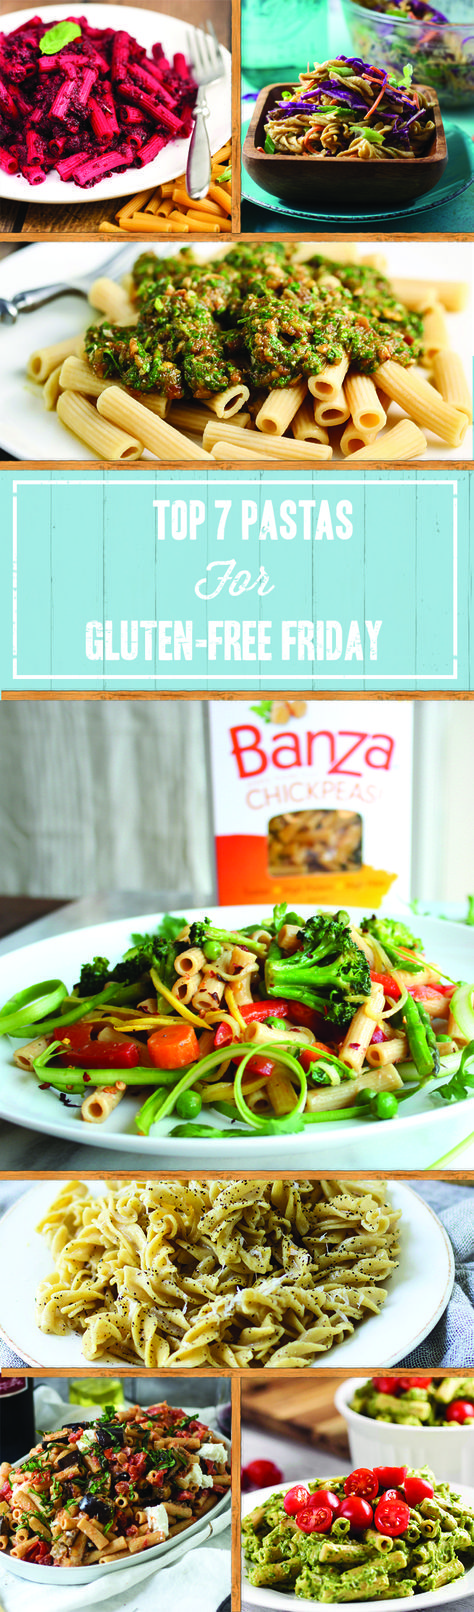 Get ready for a gluten-free friday with these healthy (and tasty!) gluten-free pasta recipes by Banza.